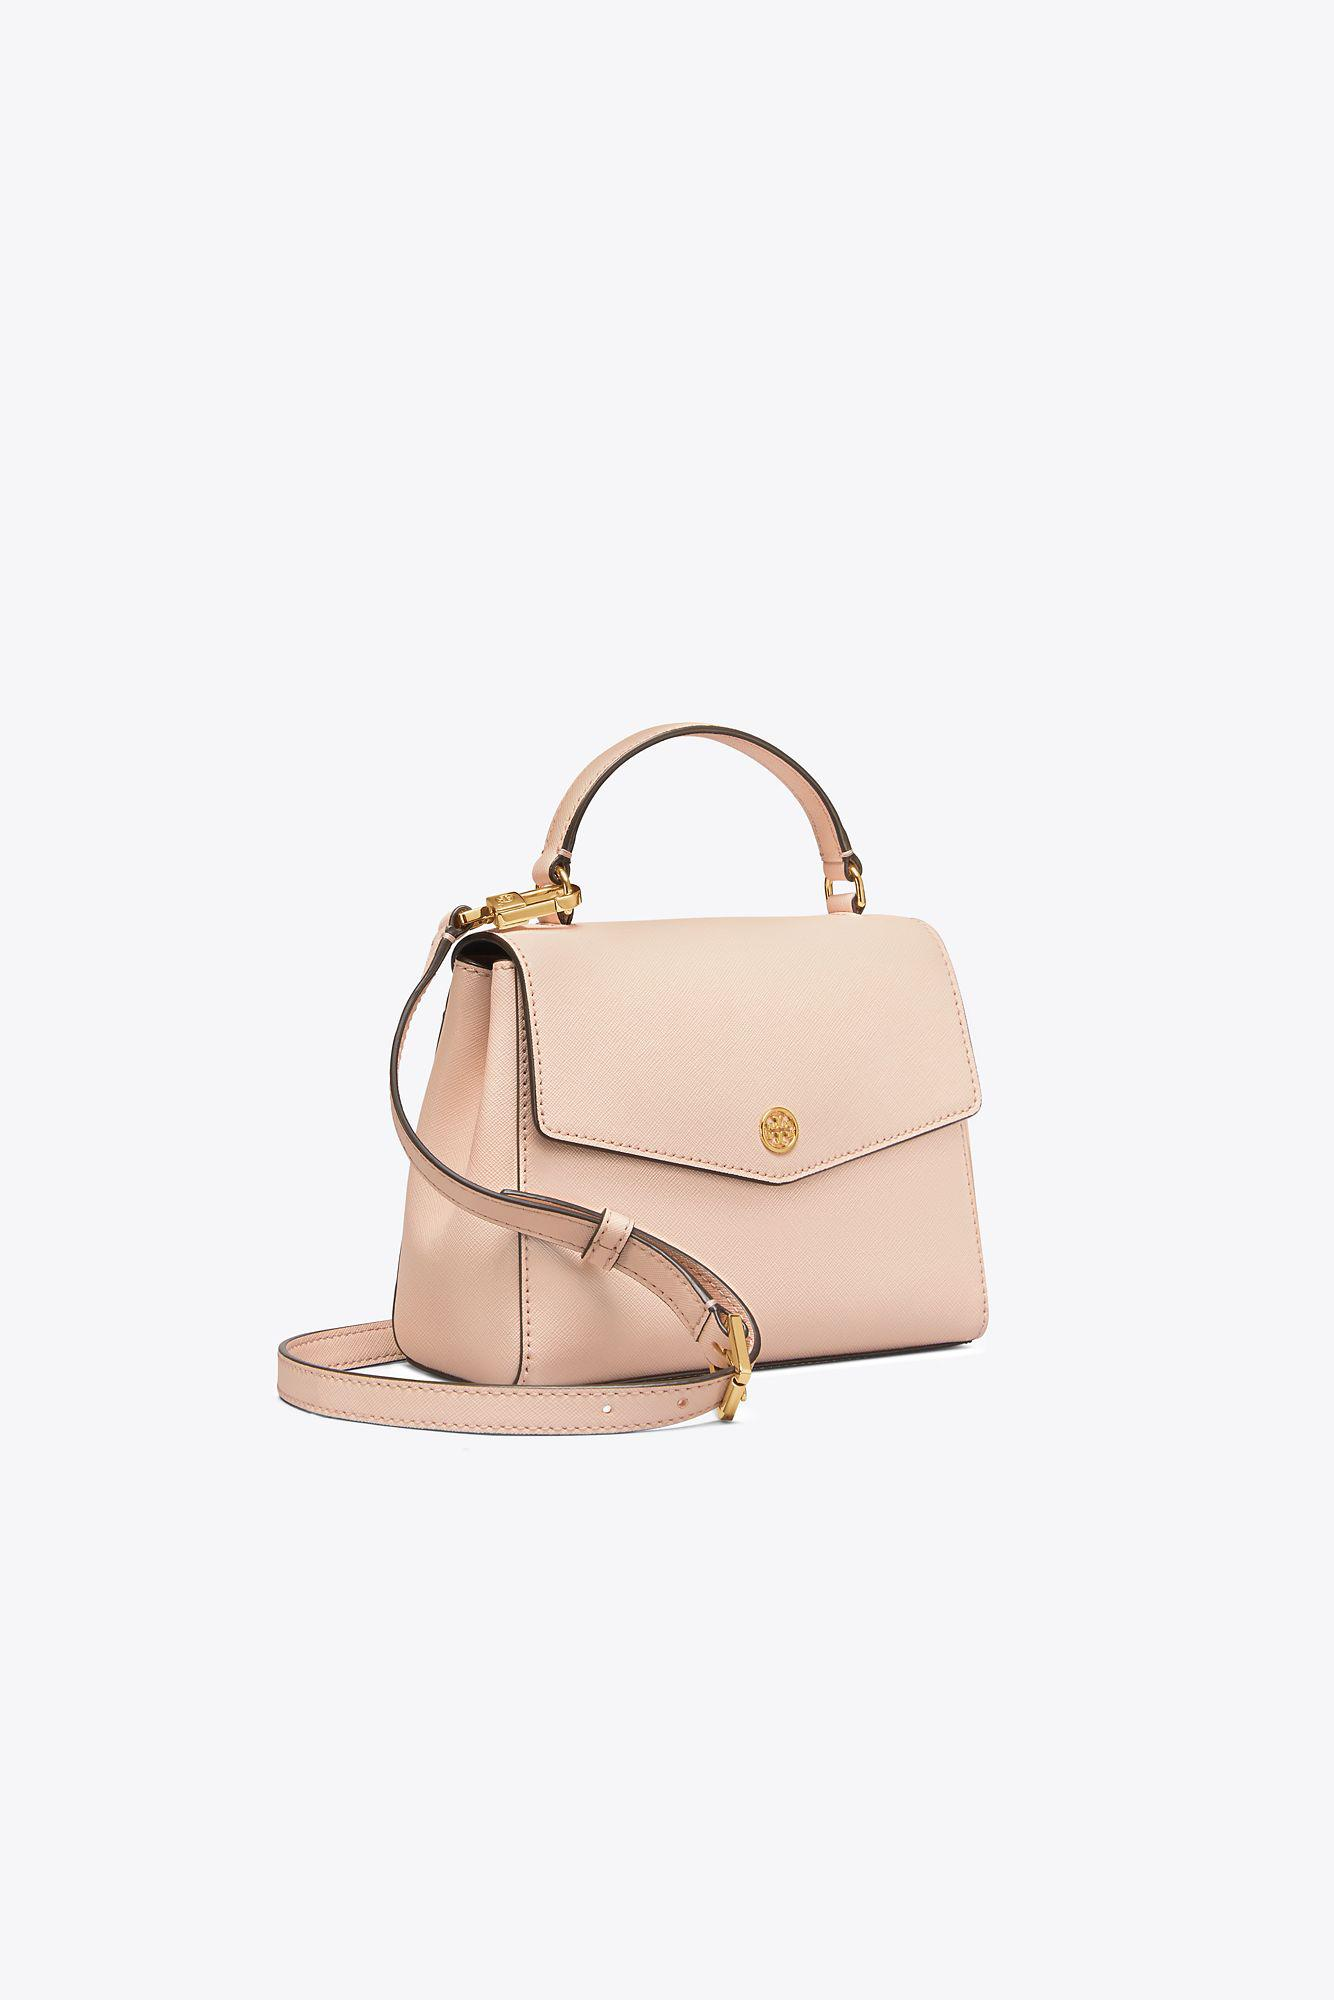 Tory Burch Leather Robinson Small Top-handle Satchel - Lyst